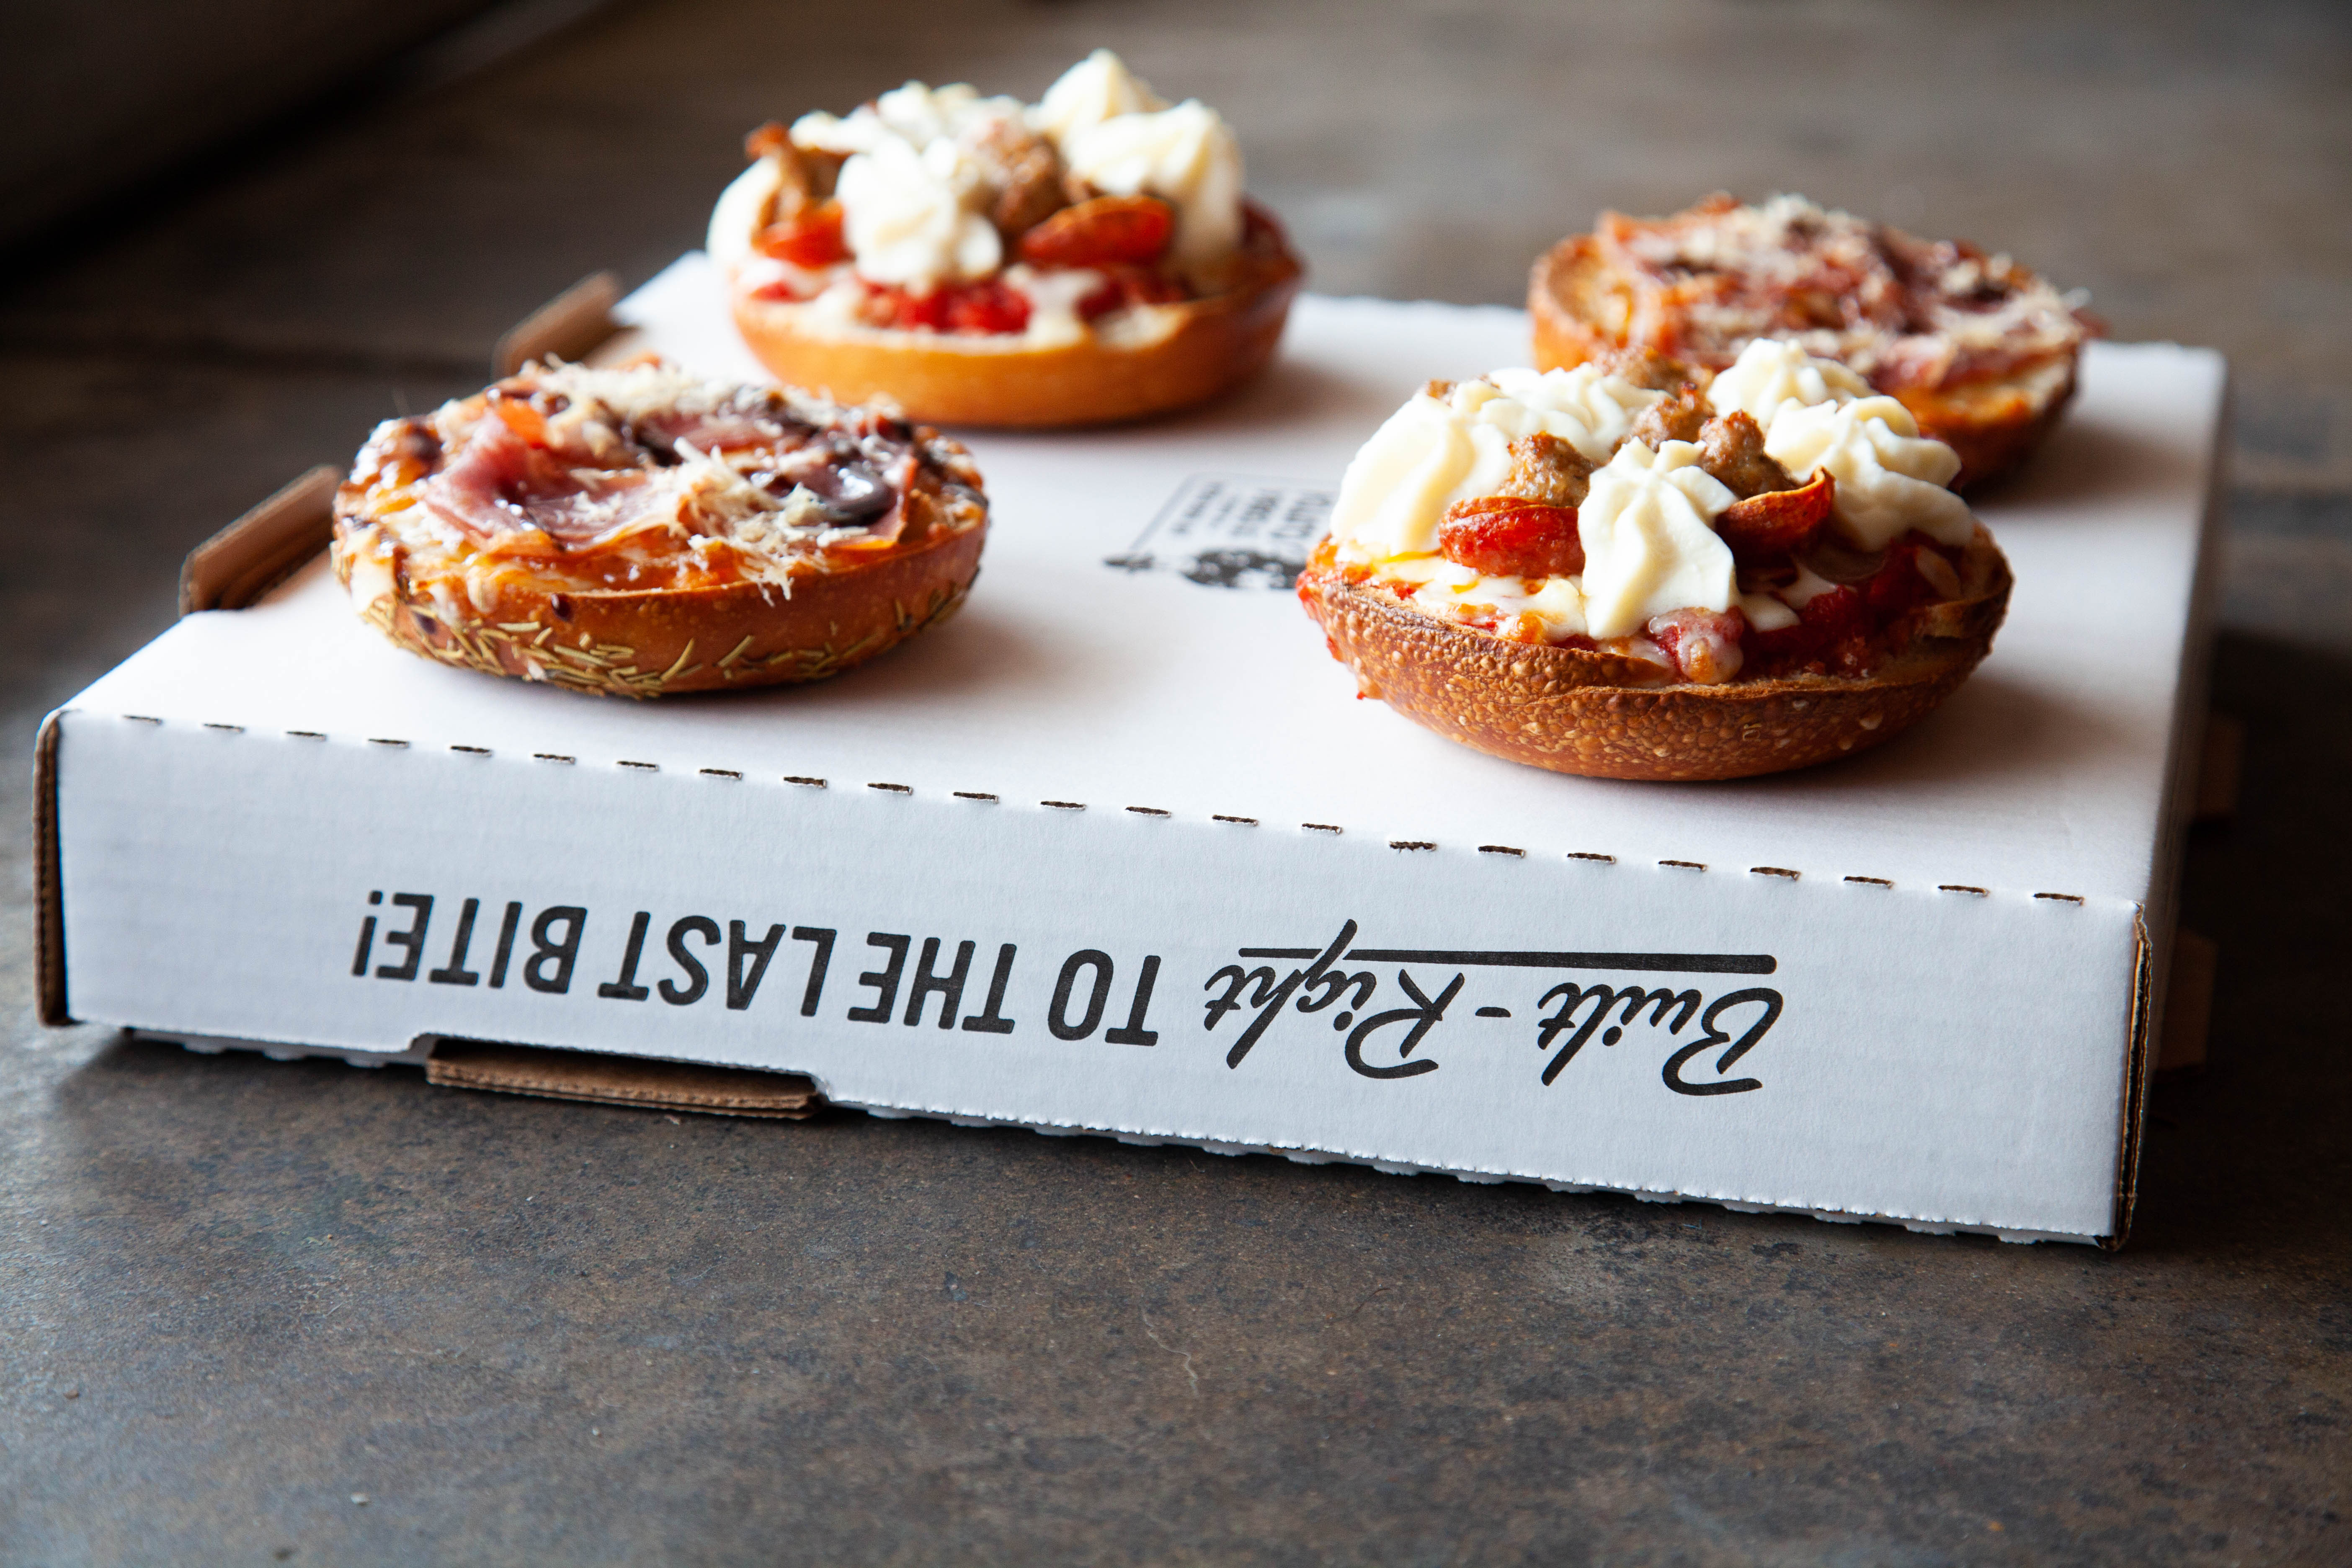 Pizza bagels from Via 313 and Rosen's Bagel Co